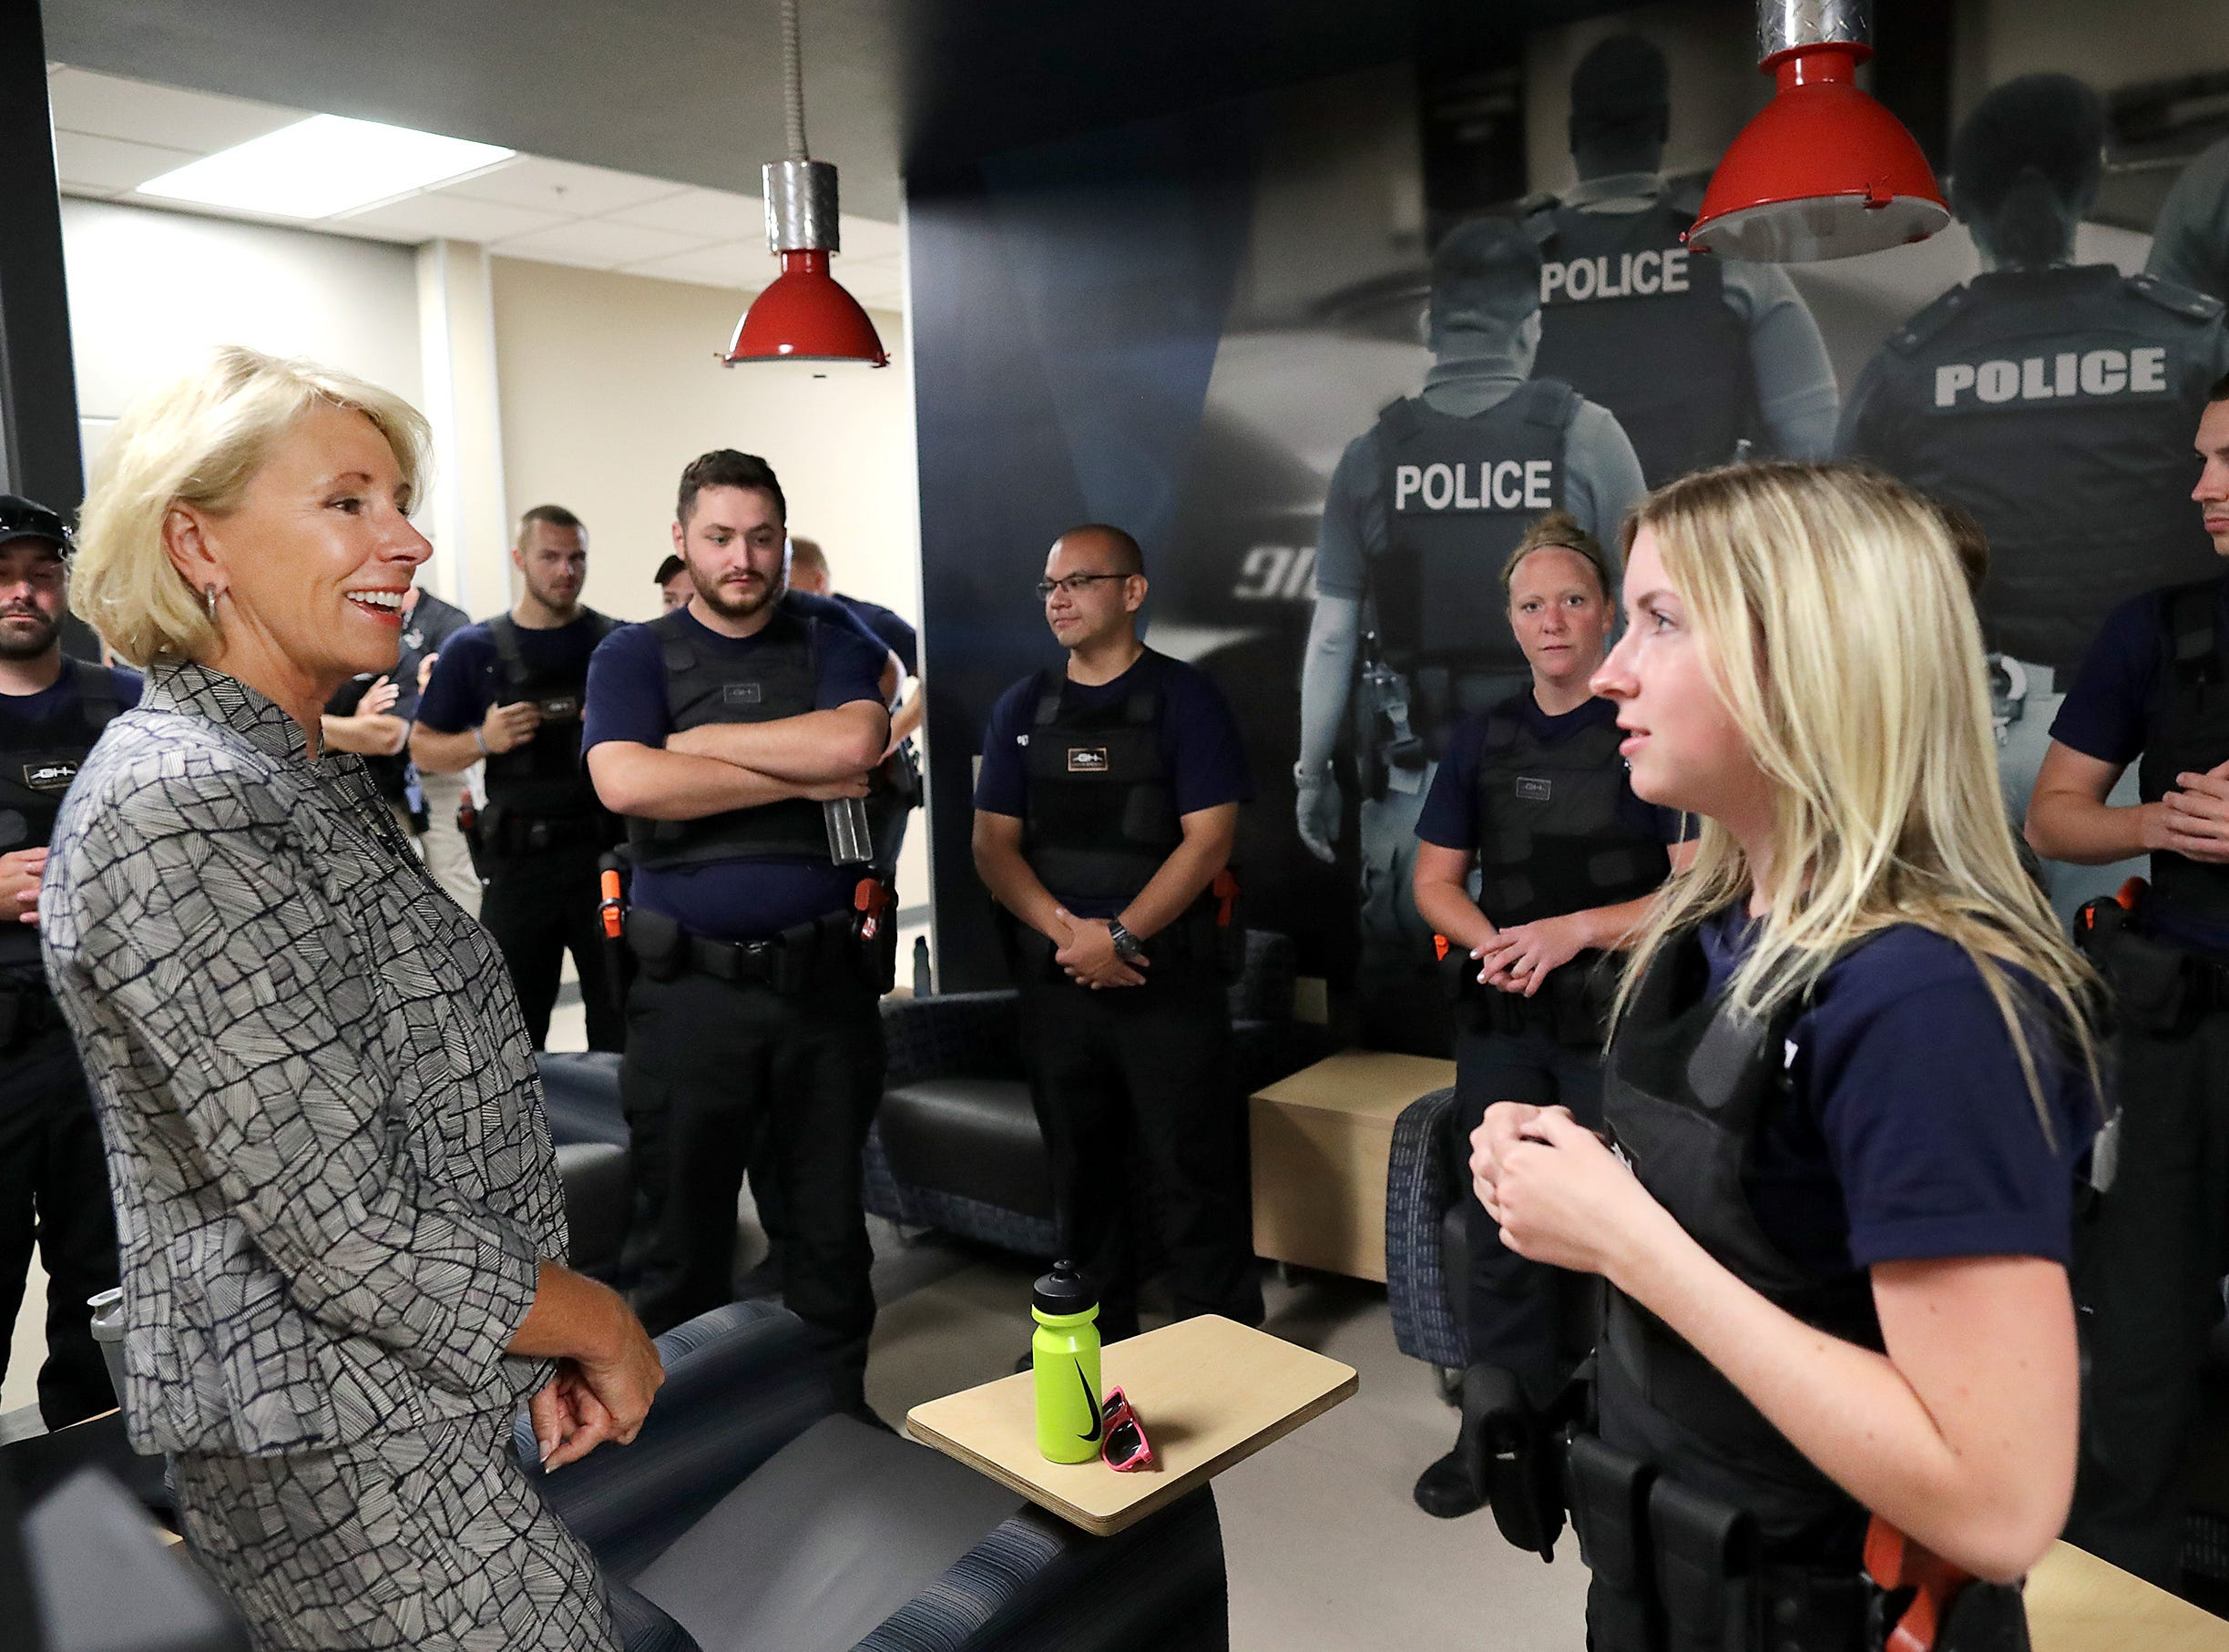 U.S. Secretary of Education Betsy DeVos talks with students while taking a tour to see firsthand how Fox Valley Technical CollegeÕs Public Safety Training Center is merging classroom lessons with reality-based hands-on training on Tuesday, July 24, 2018 in Greenville, Wis. Wm. Glasheen/USA TODAY NETWORK-Wisconsin